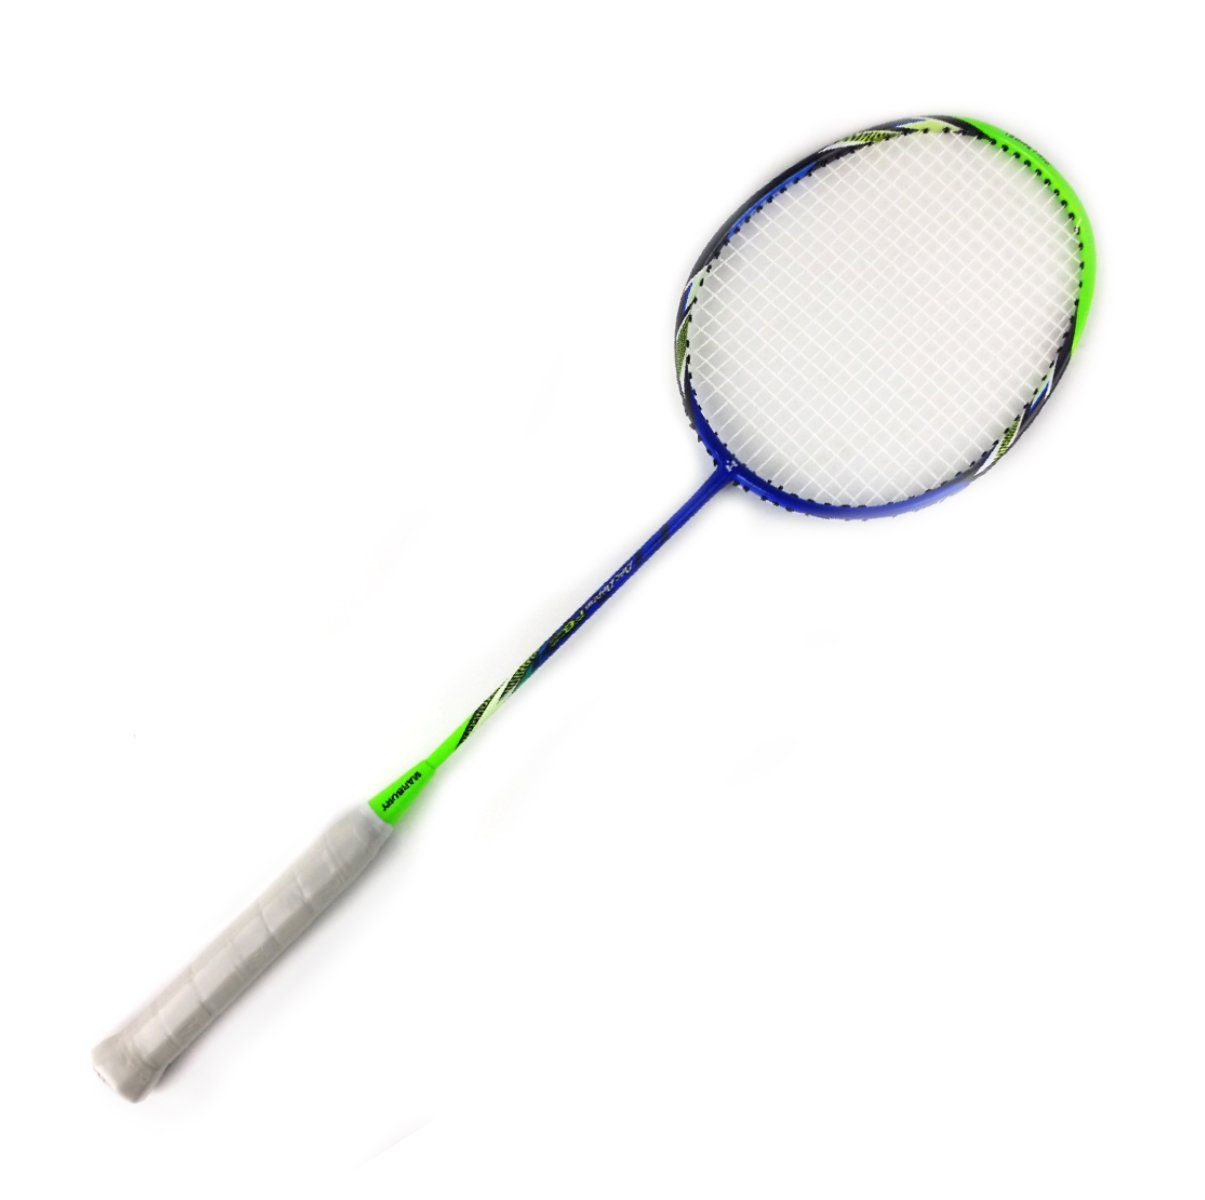 My Badminton Racket - Glorious Performance with Lightweight Micro Carbon Fiber Racket -Super Tight String and Elastic Shaft - Ergonomic Design - Universal Size to All Age - 471